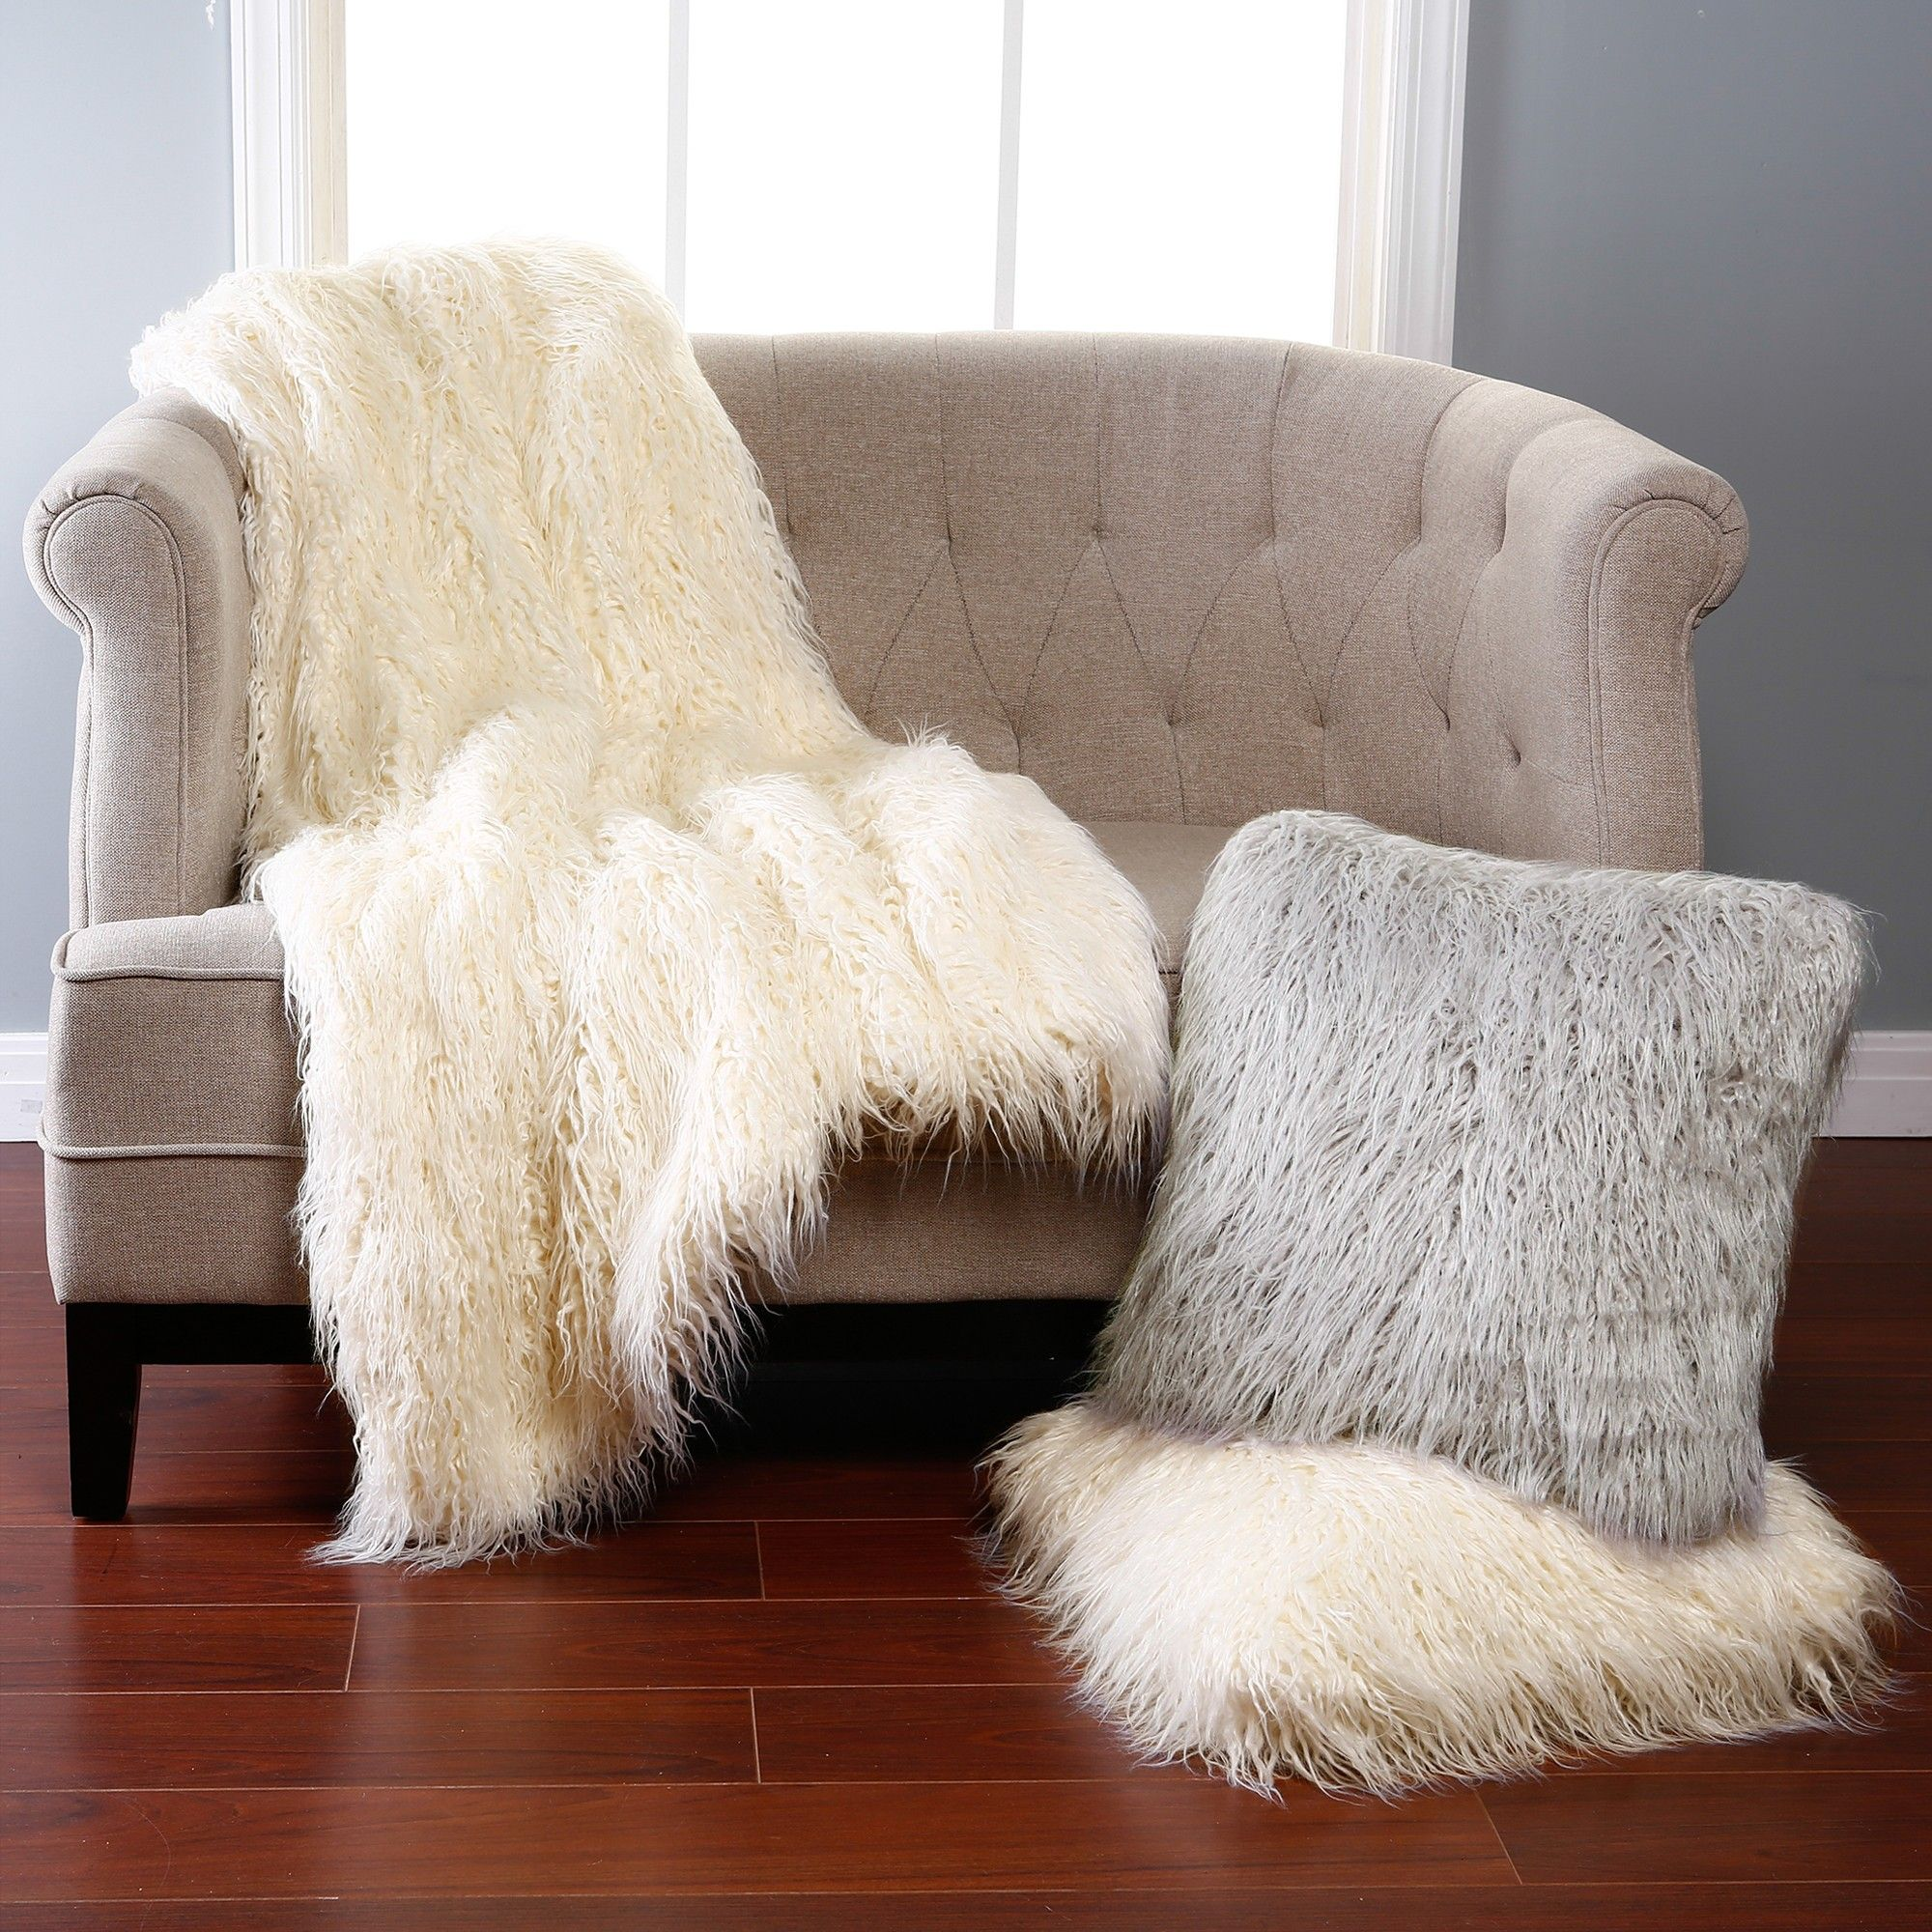 Comfy Faux Sheepskin Rug For Floor Decor Ideas: Faux